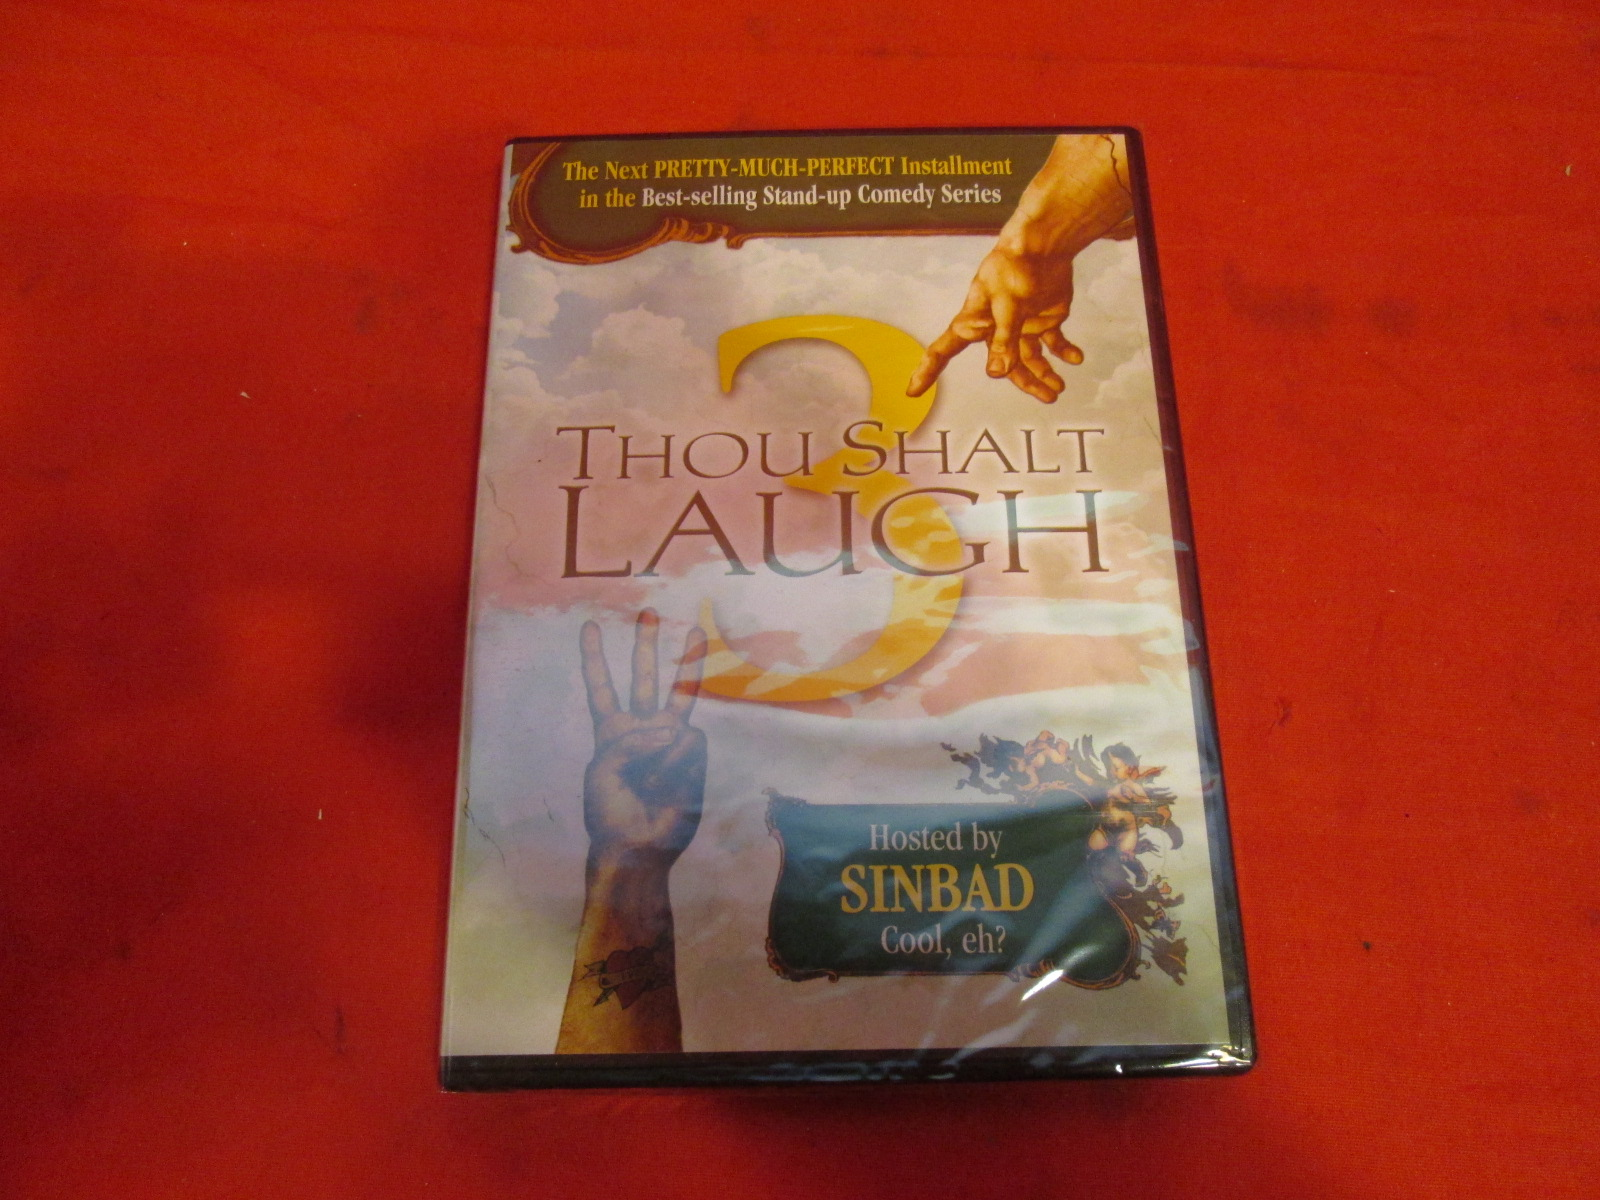 Thou Shalt Laugh 3 Hosted By Sinbad On DVD